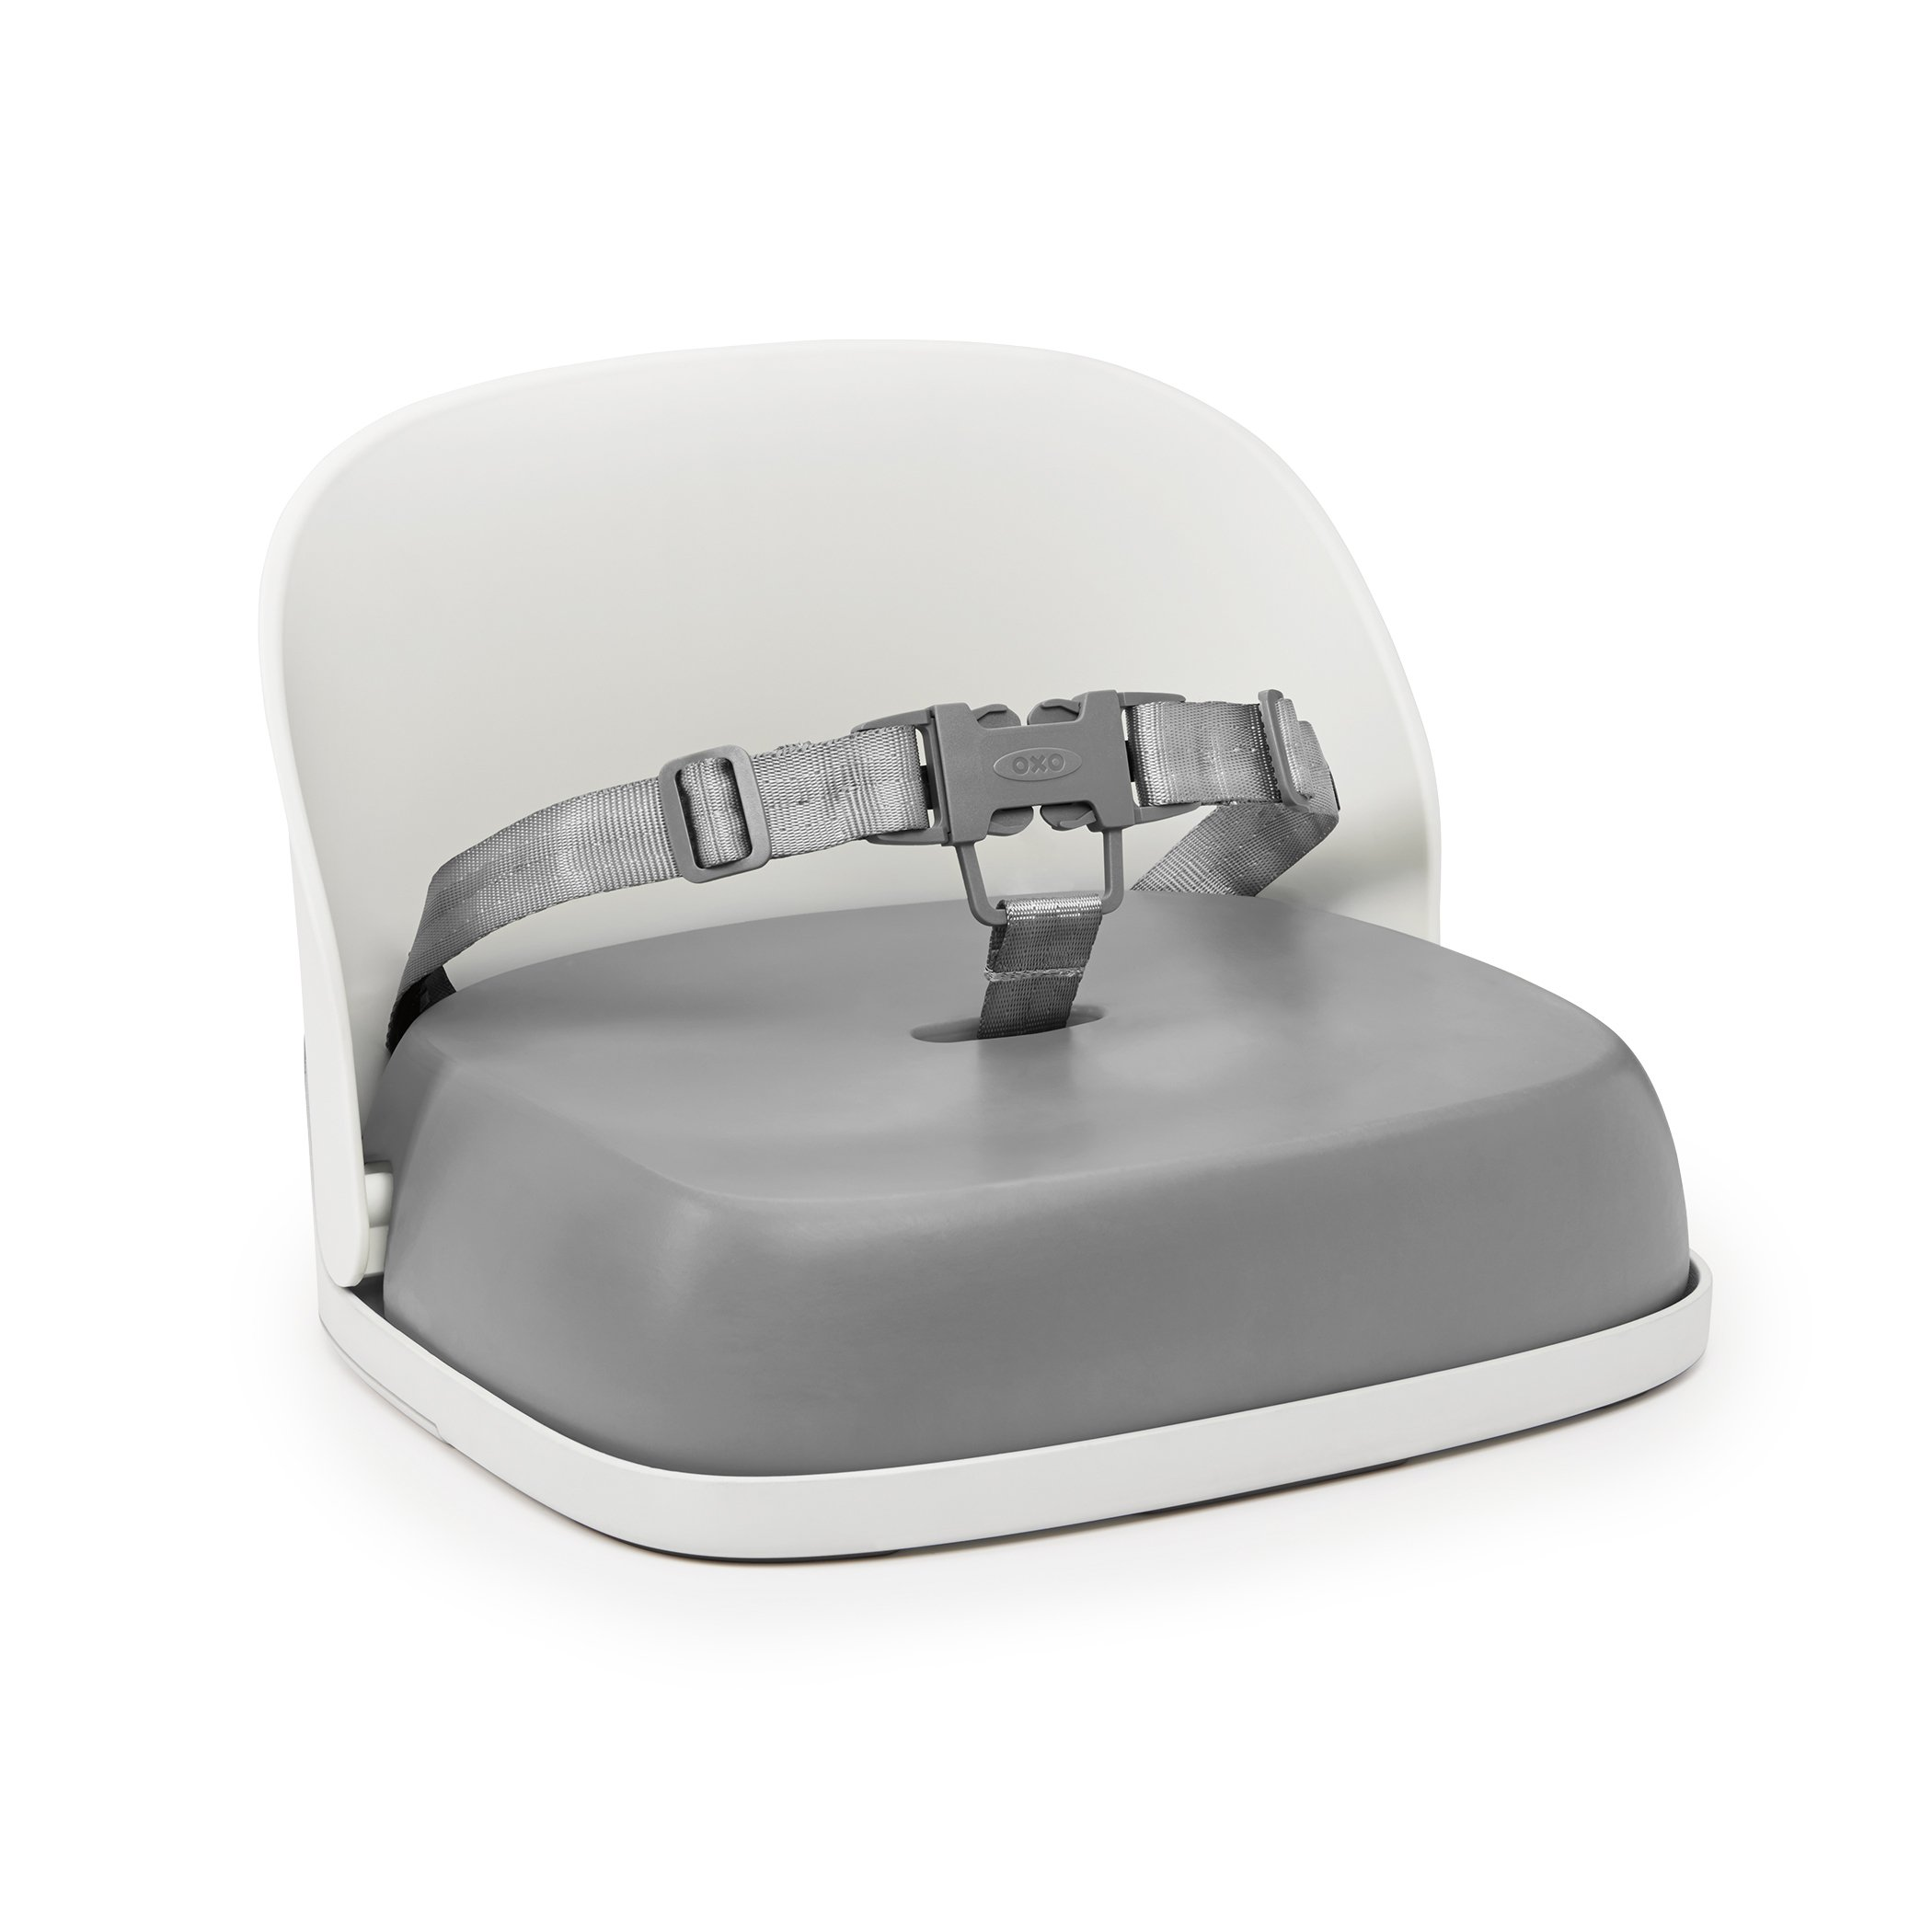 OXO Tot Perch Booster Seat with Straps, Gray by OXO Tot